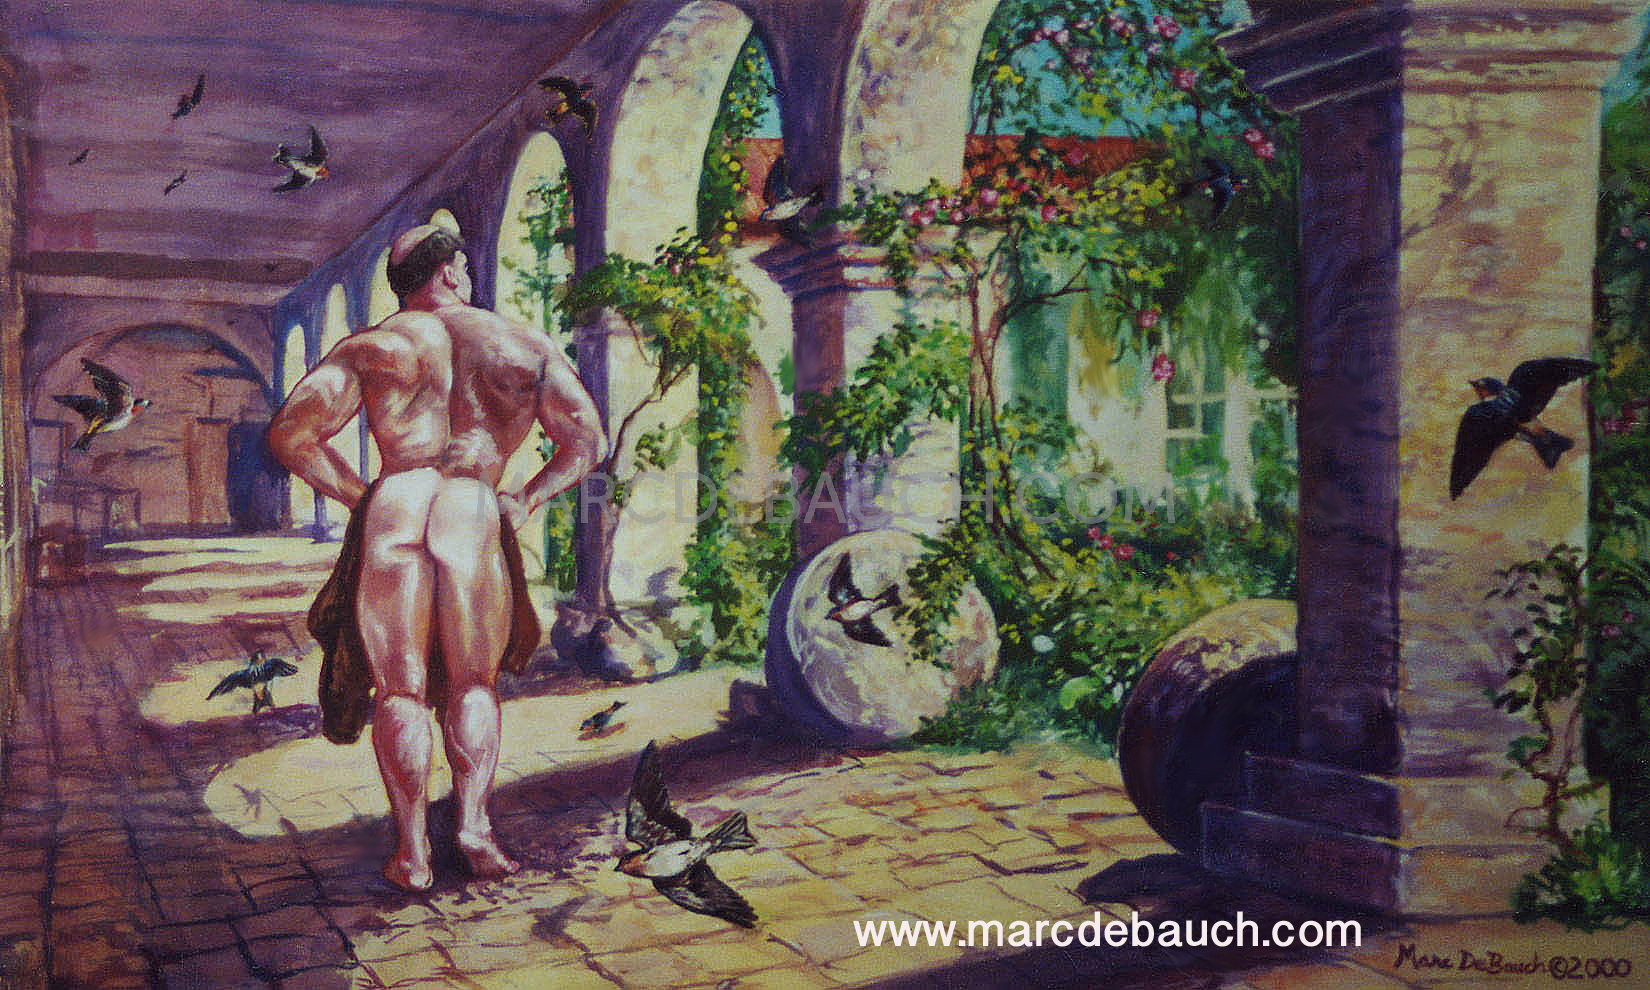 NAKED IN THE CLOISTERS